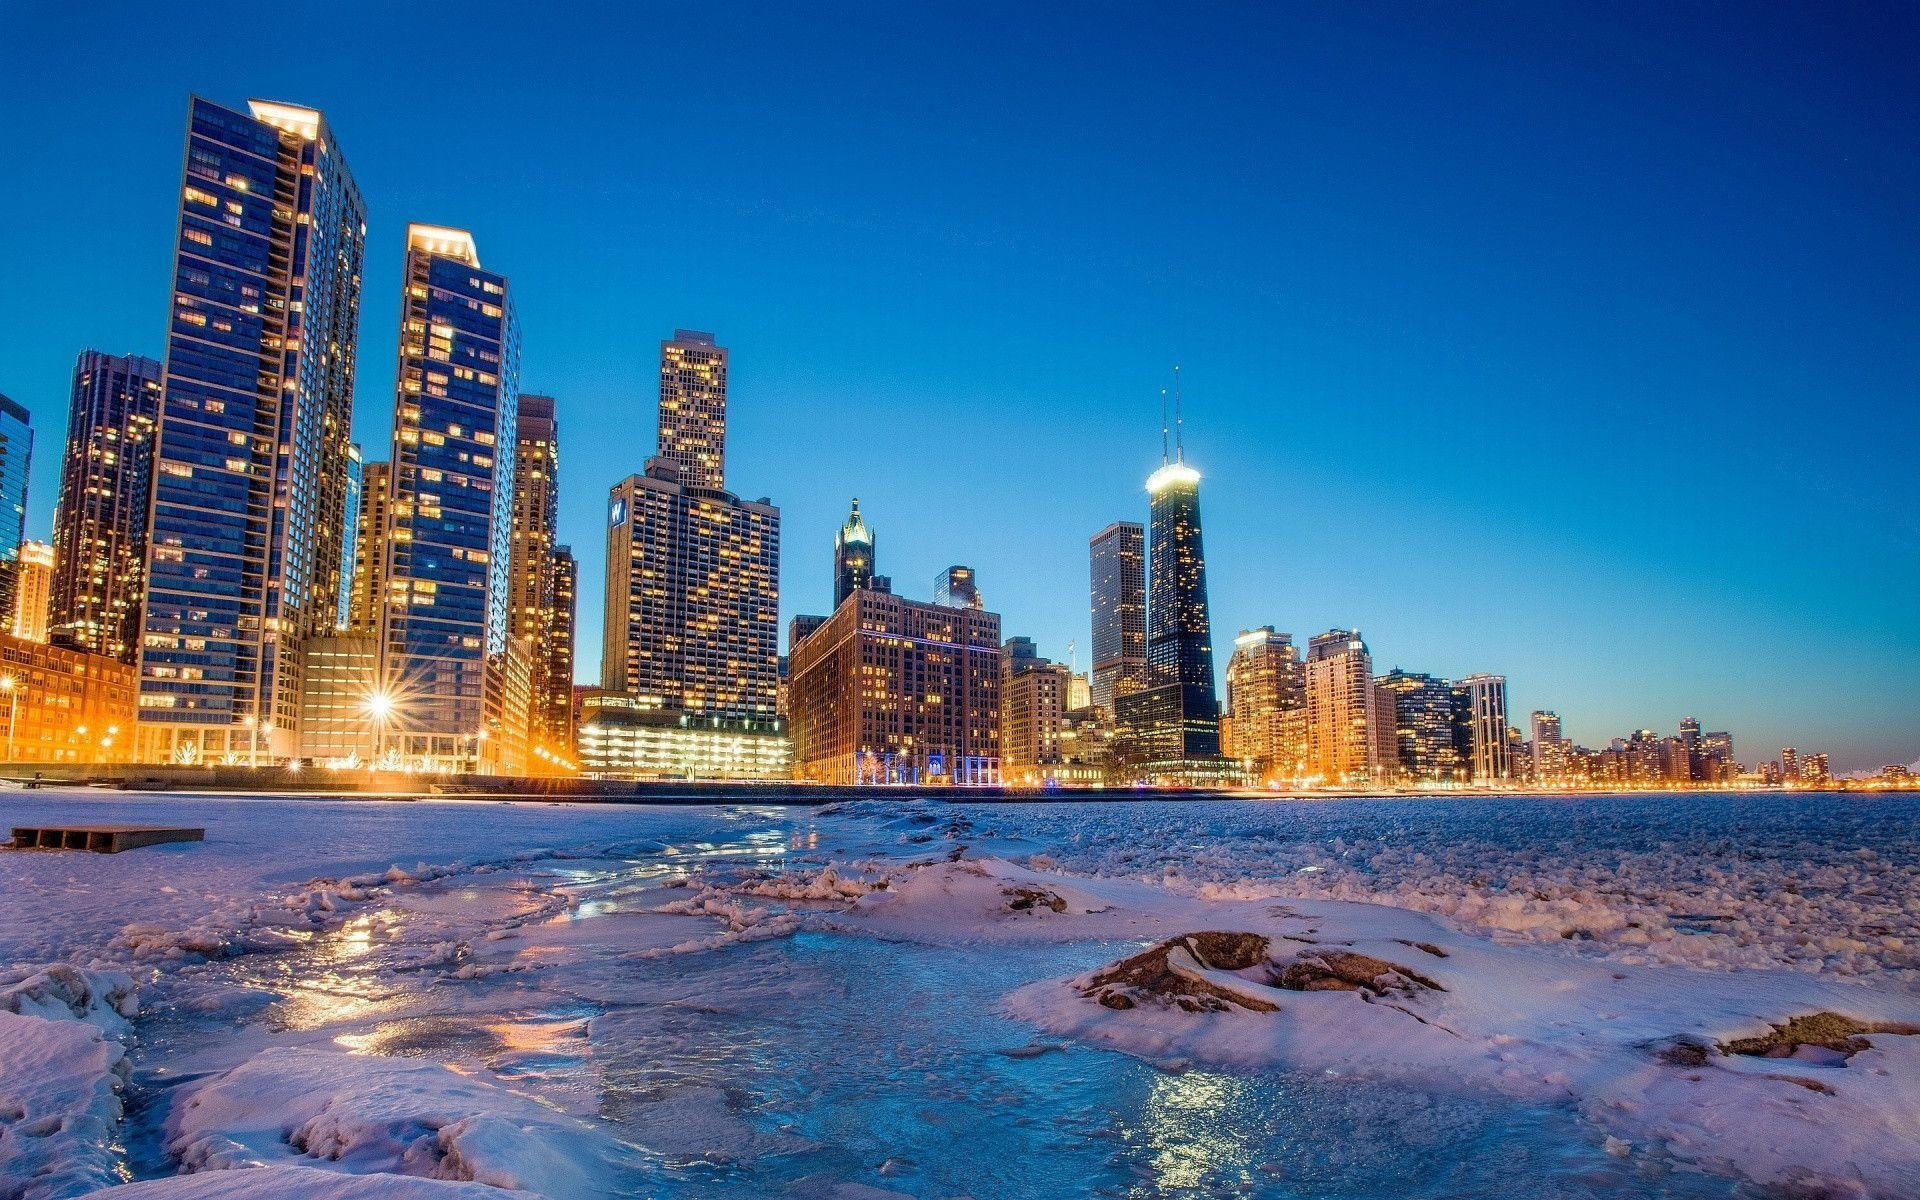 1920x1200 Chicago Skyline Wallpapers - Full HD wallpaper search